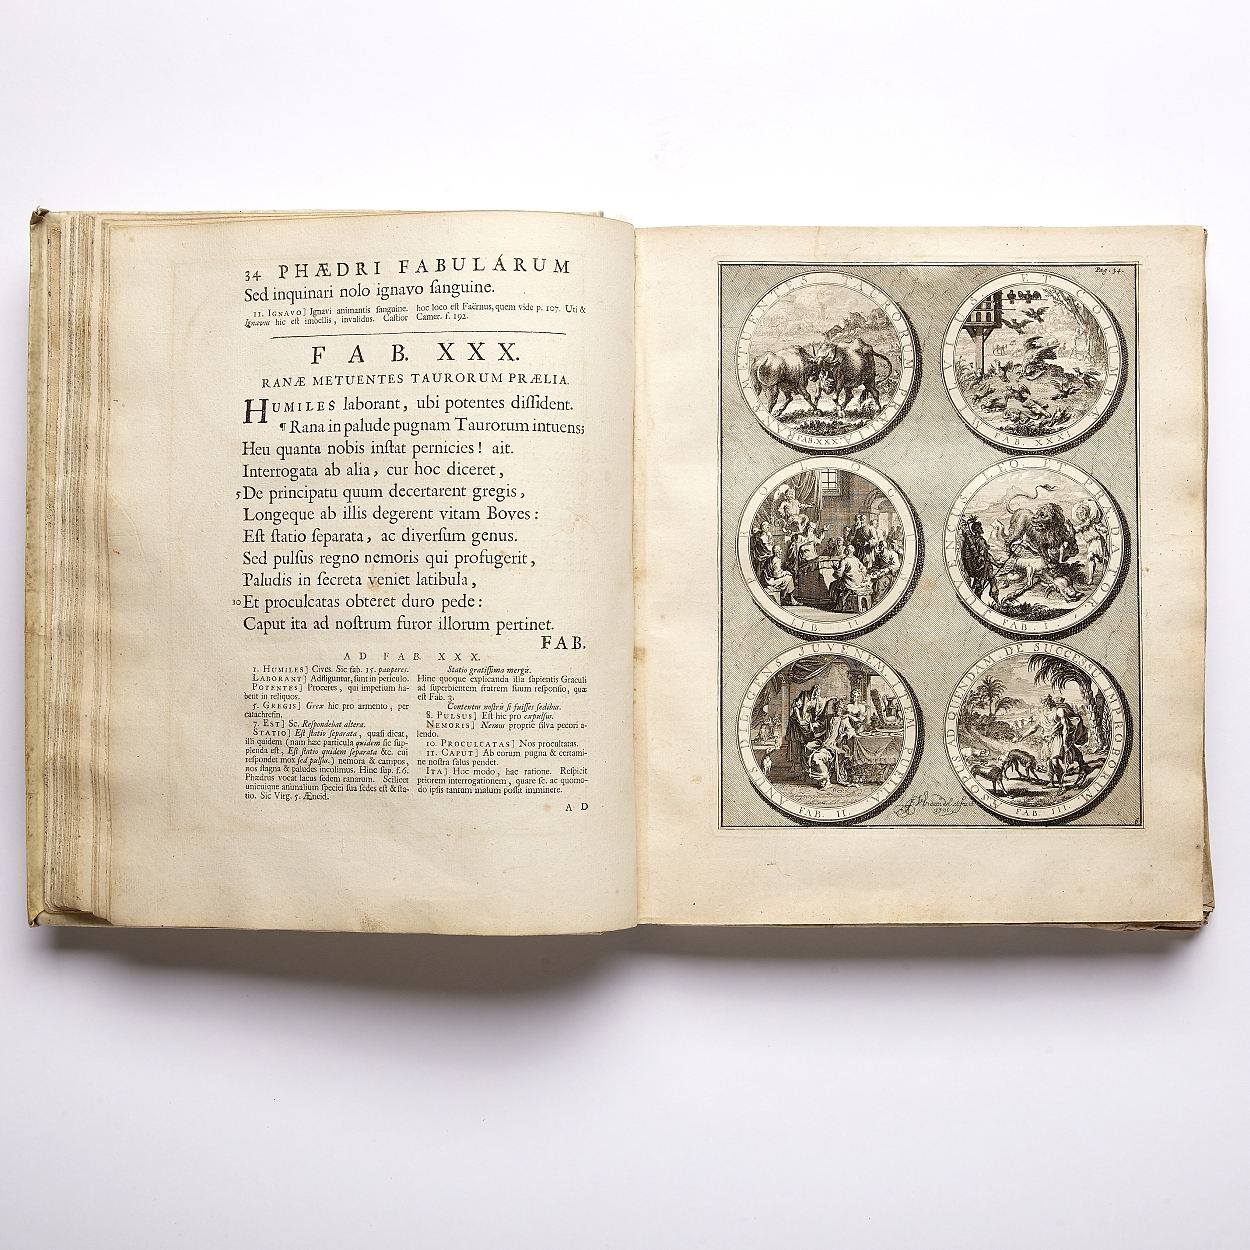 Illustrated edition of Phaedrus's fables from 1701